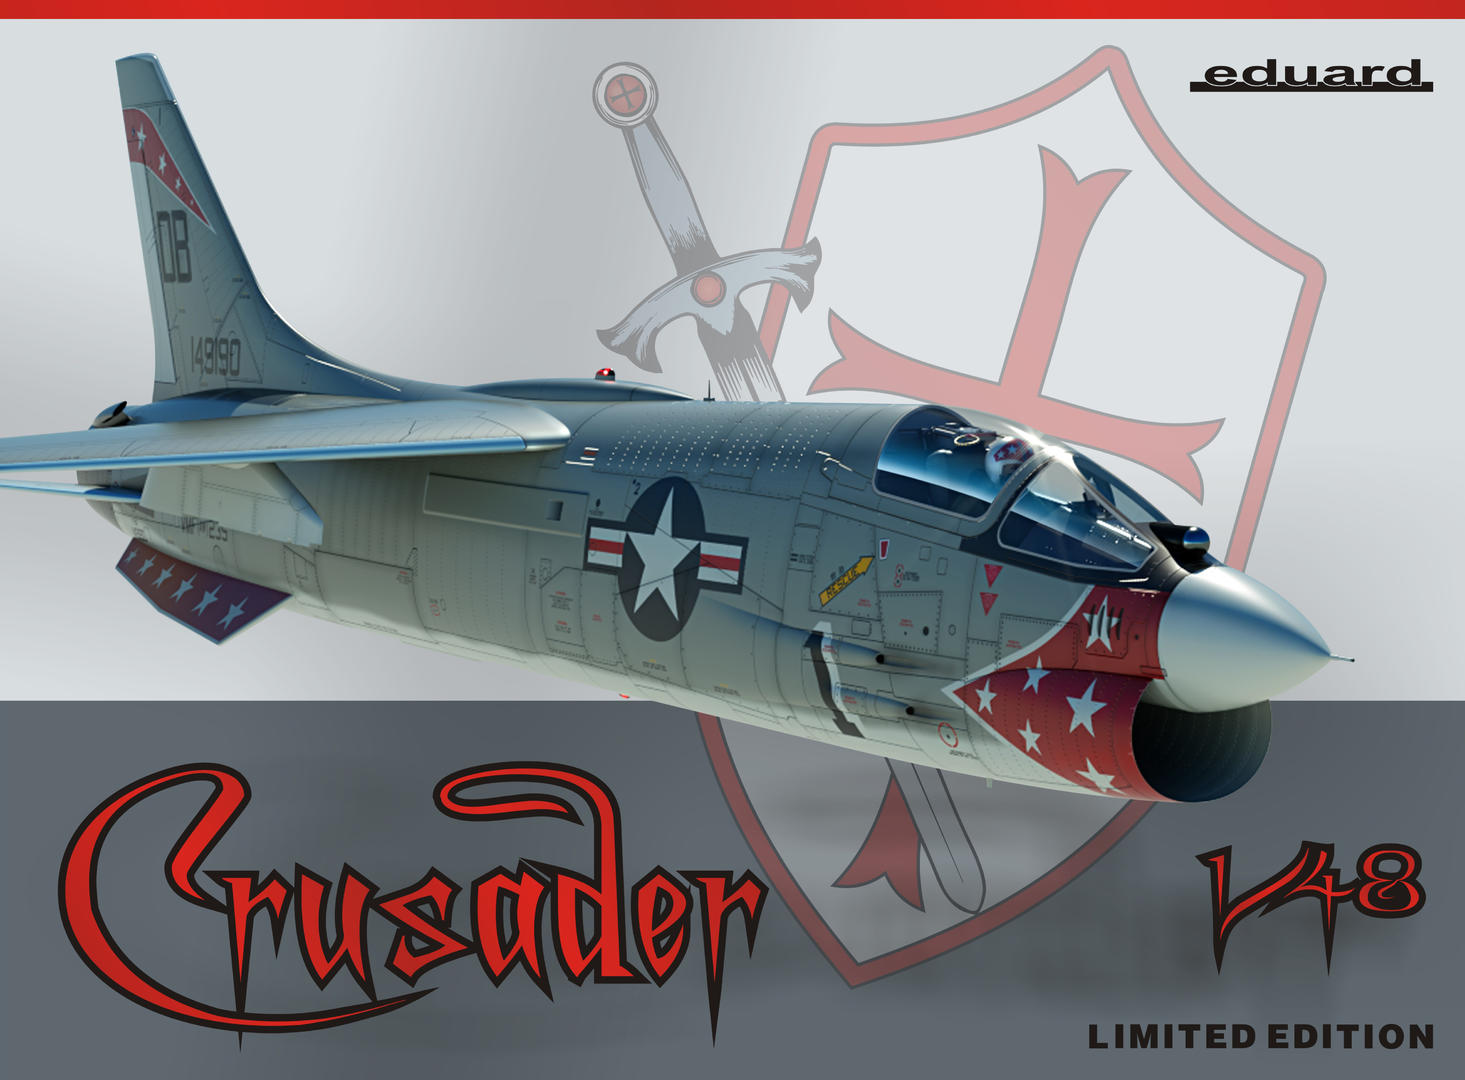 Eduard 1/48 Vought F-8E Crusader Limited Edition